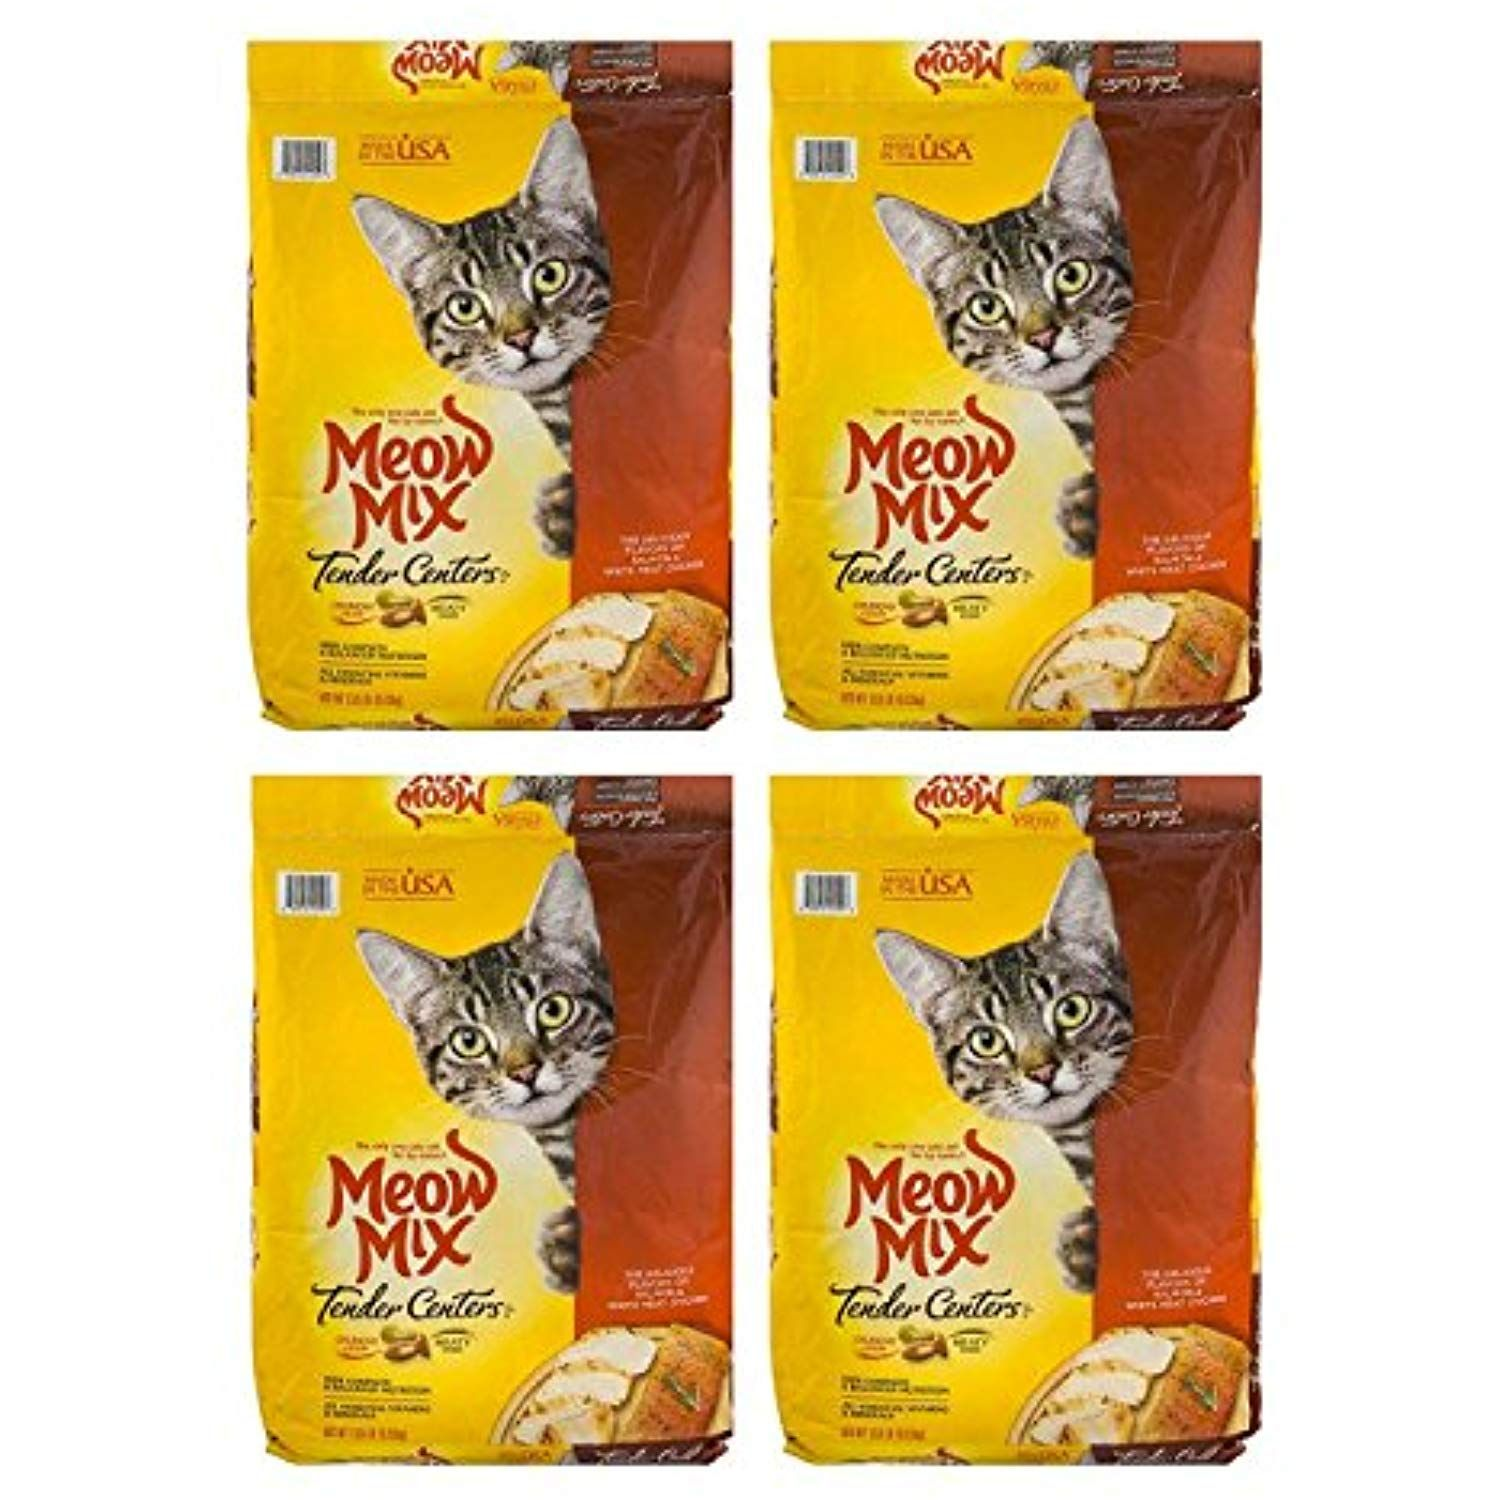 Meow Mix Tender Centers Dry Cat Food 4 Pack Of 13 5 Lb Learn More By Visiting The Image Link This Is An Affiliate Link Cat Dry Cat Food Cat Food Food